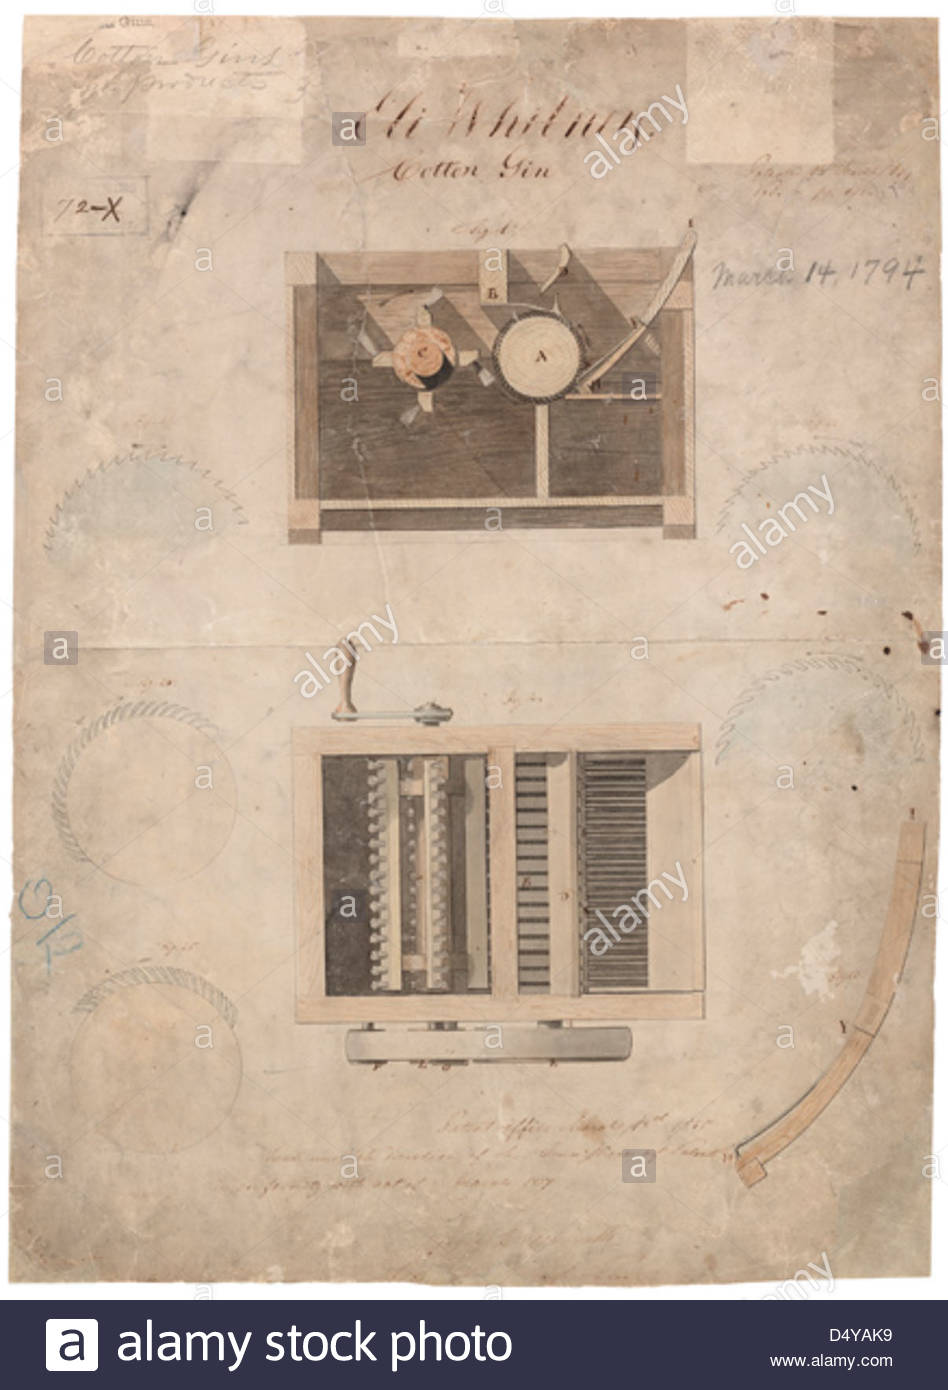 948x1390 Eli Whitney's Cotton Gin Patent Drawing, 03141794, Page 1 Stock